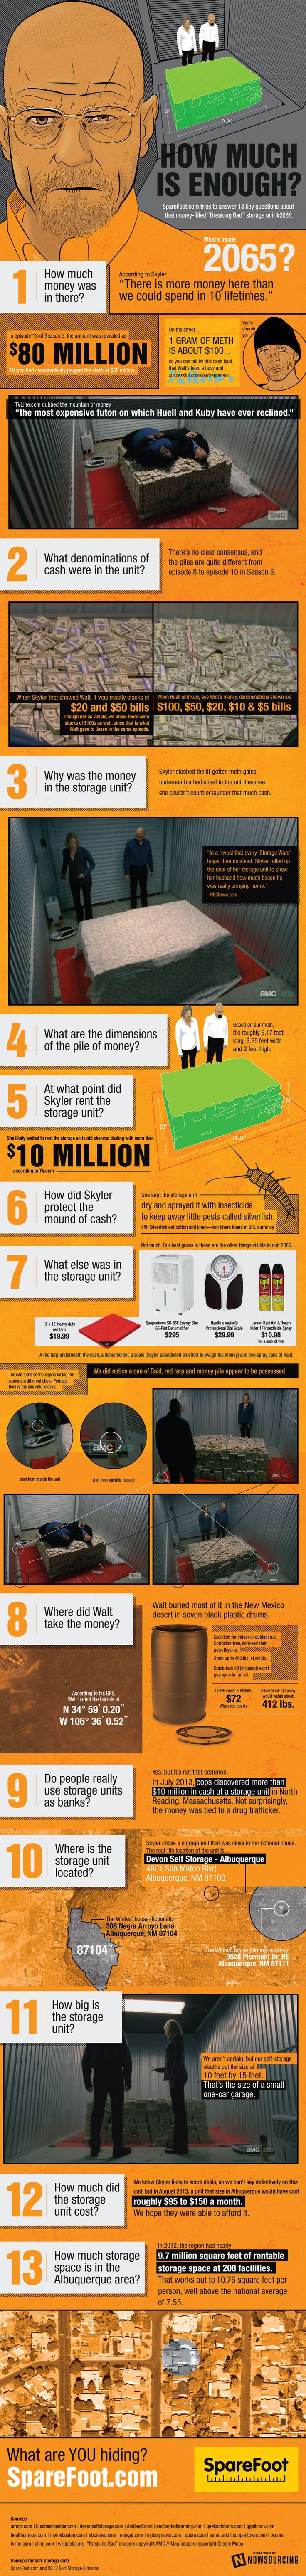 How Much is Enough? (Breaking Bad Storage Unit)